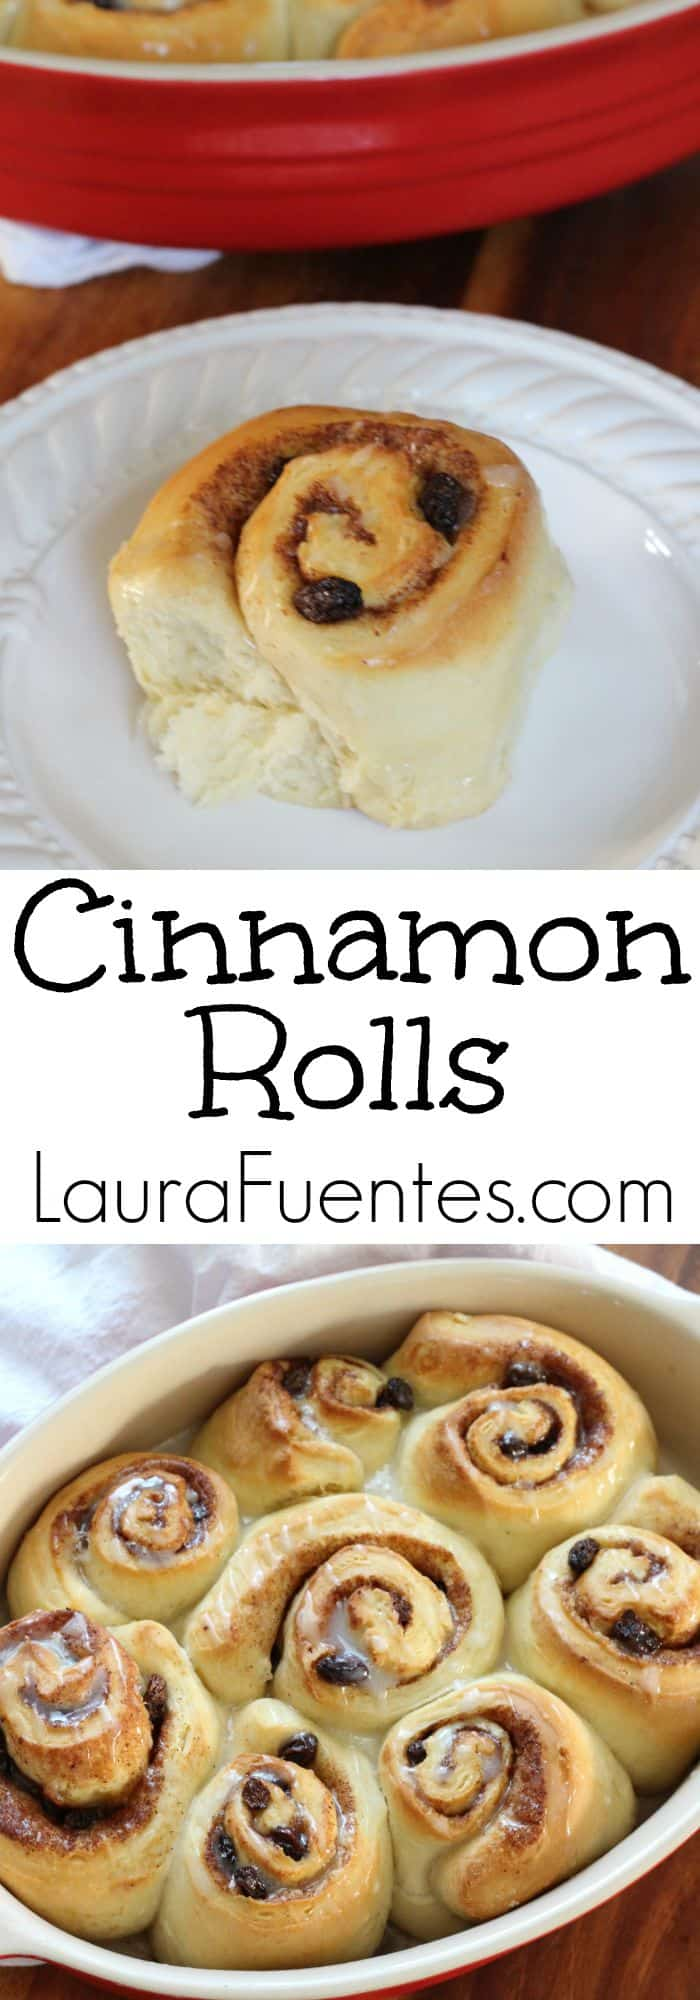 This cinnamon roll recipe is easy to make and there is very little wait! In the morning it's ready to be baked while you enjoy your cup of coffee!